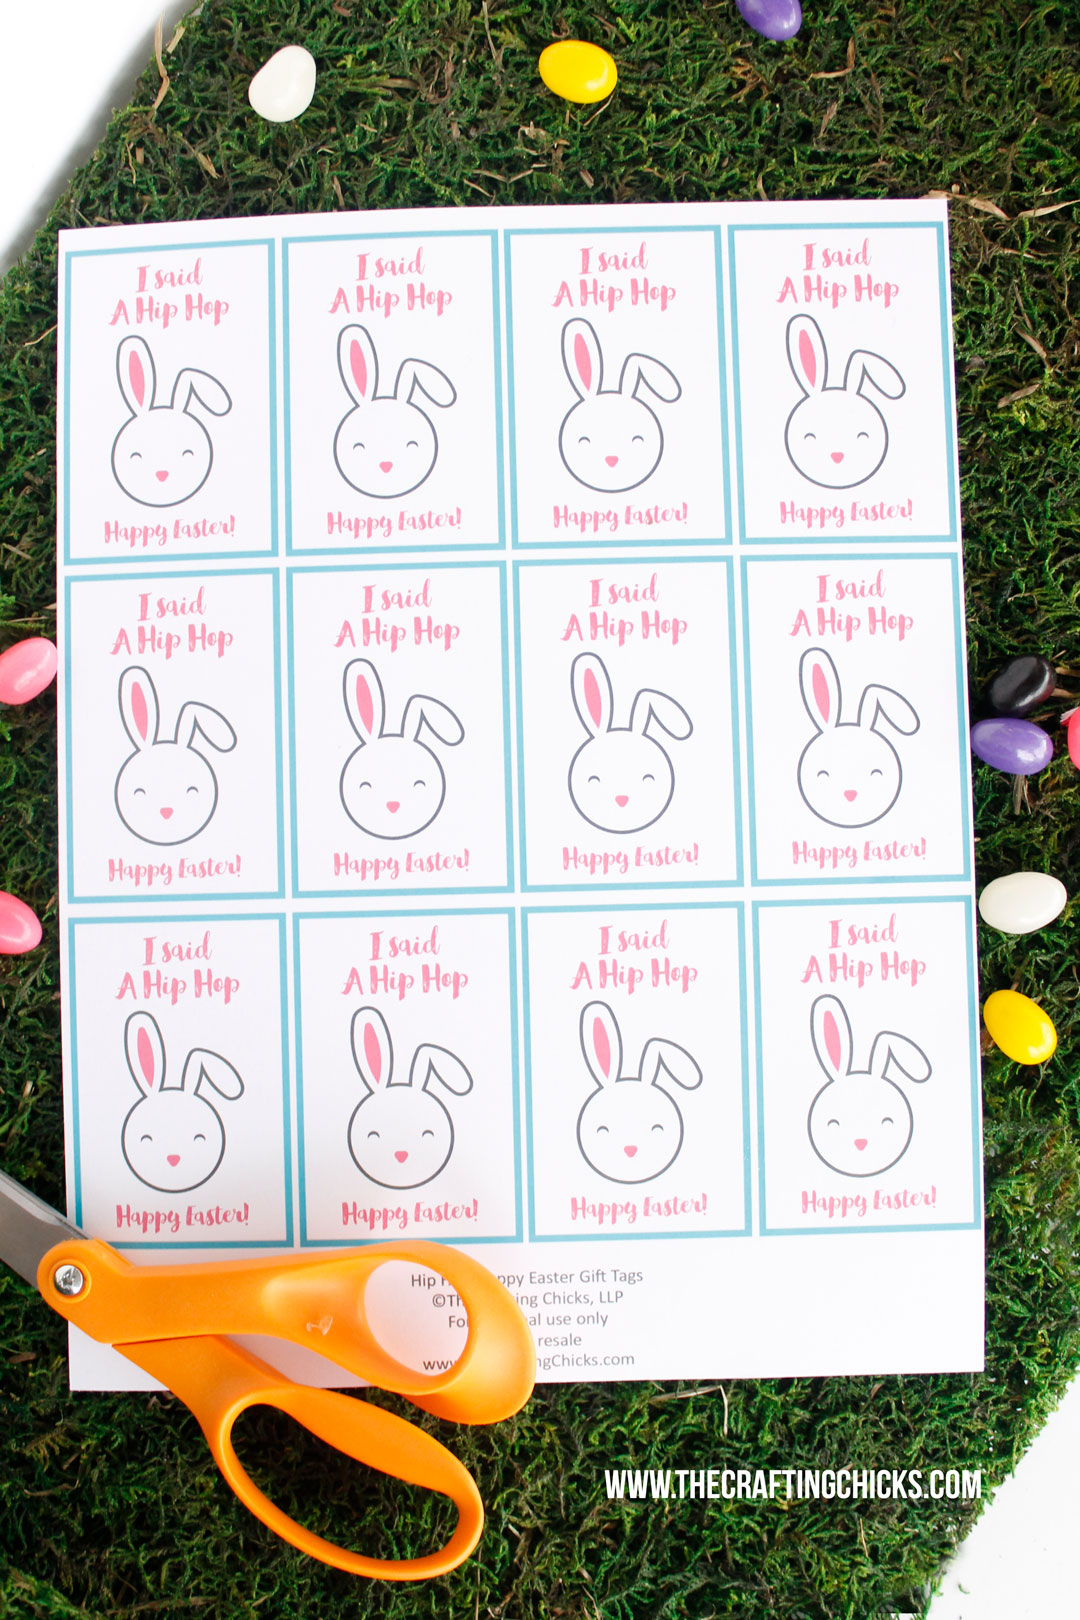 Hip hop happy easter gift tags the crafting chicks hip hop happy easter gift tag printable negle Choice Image